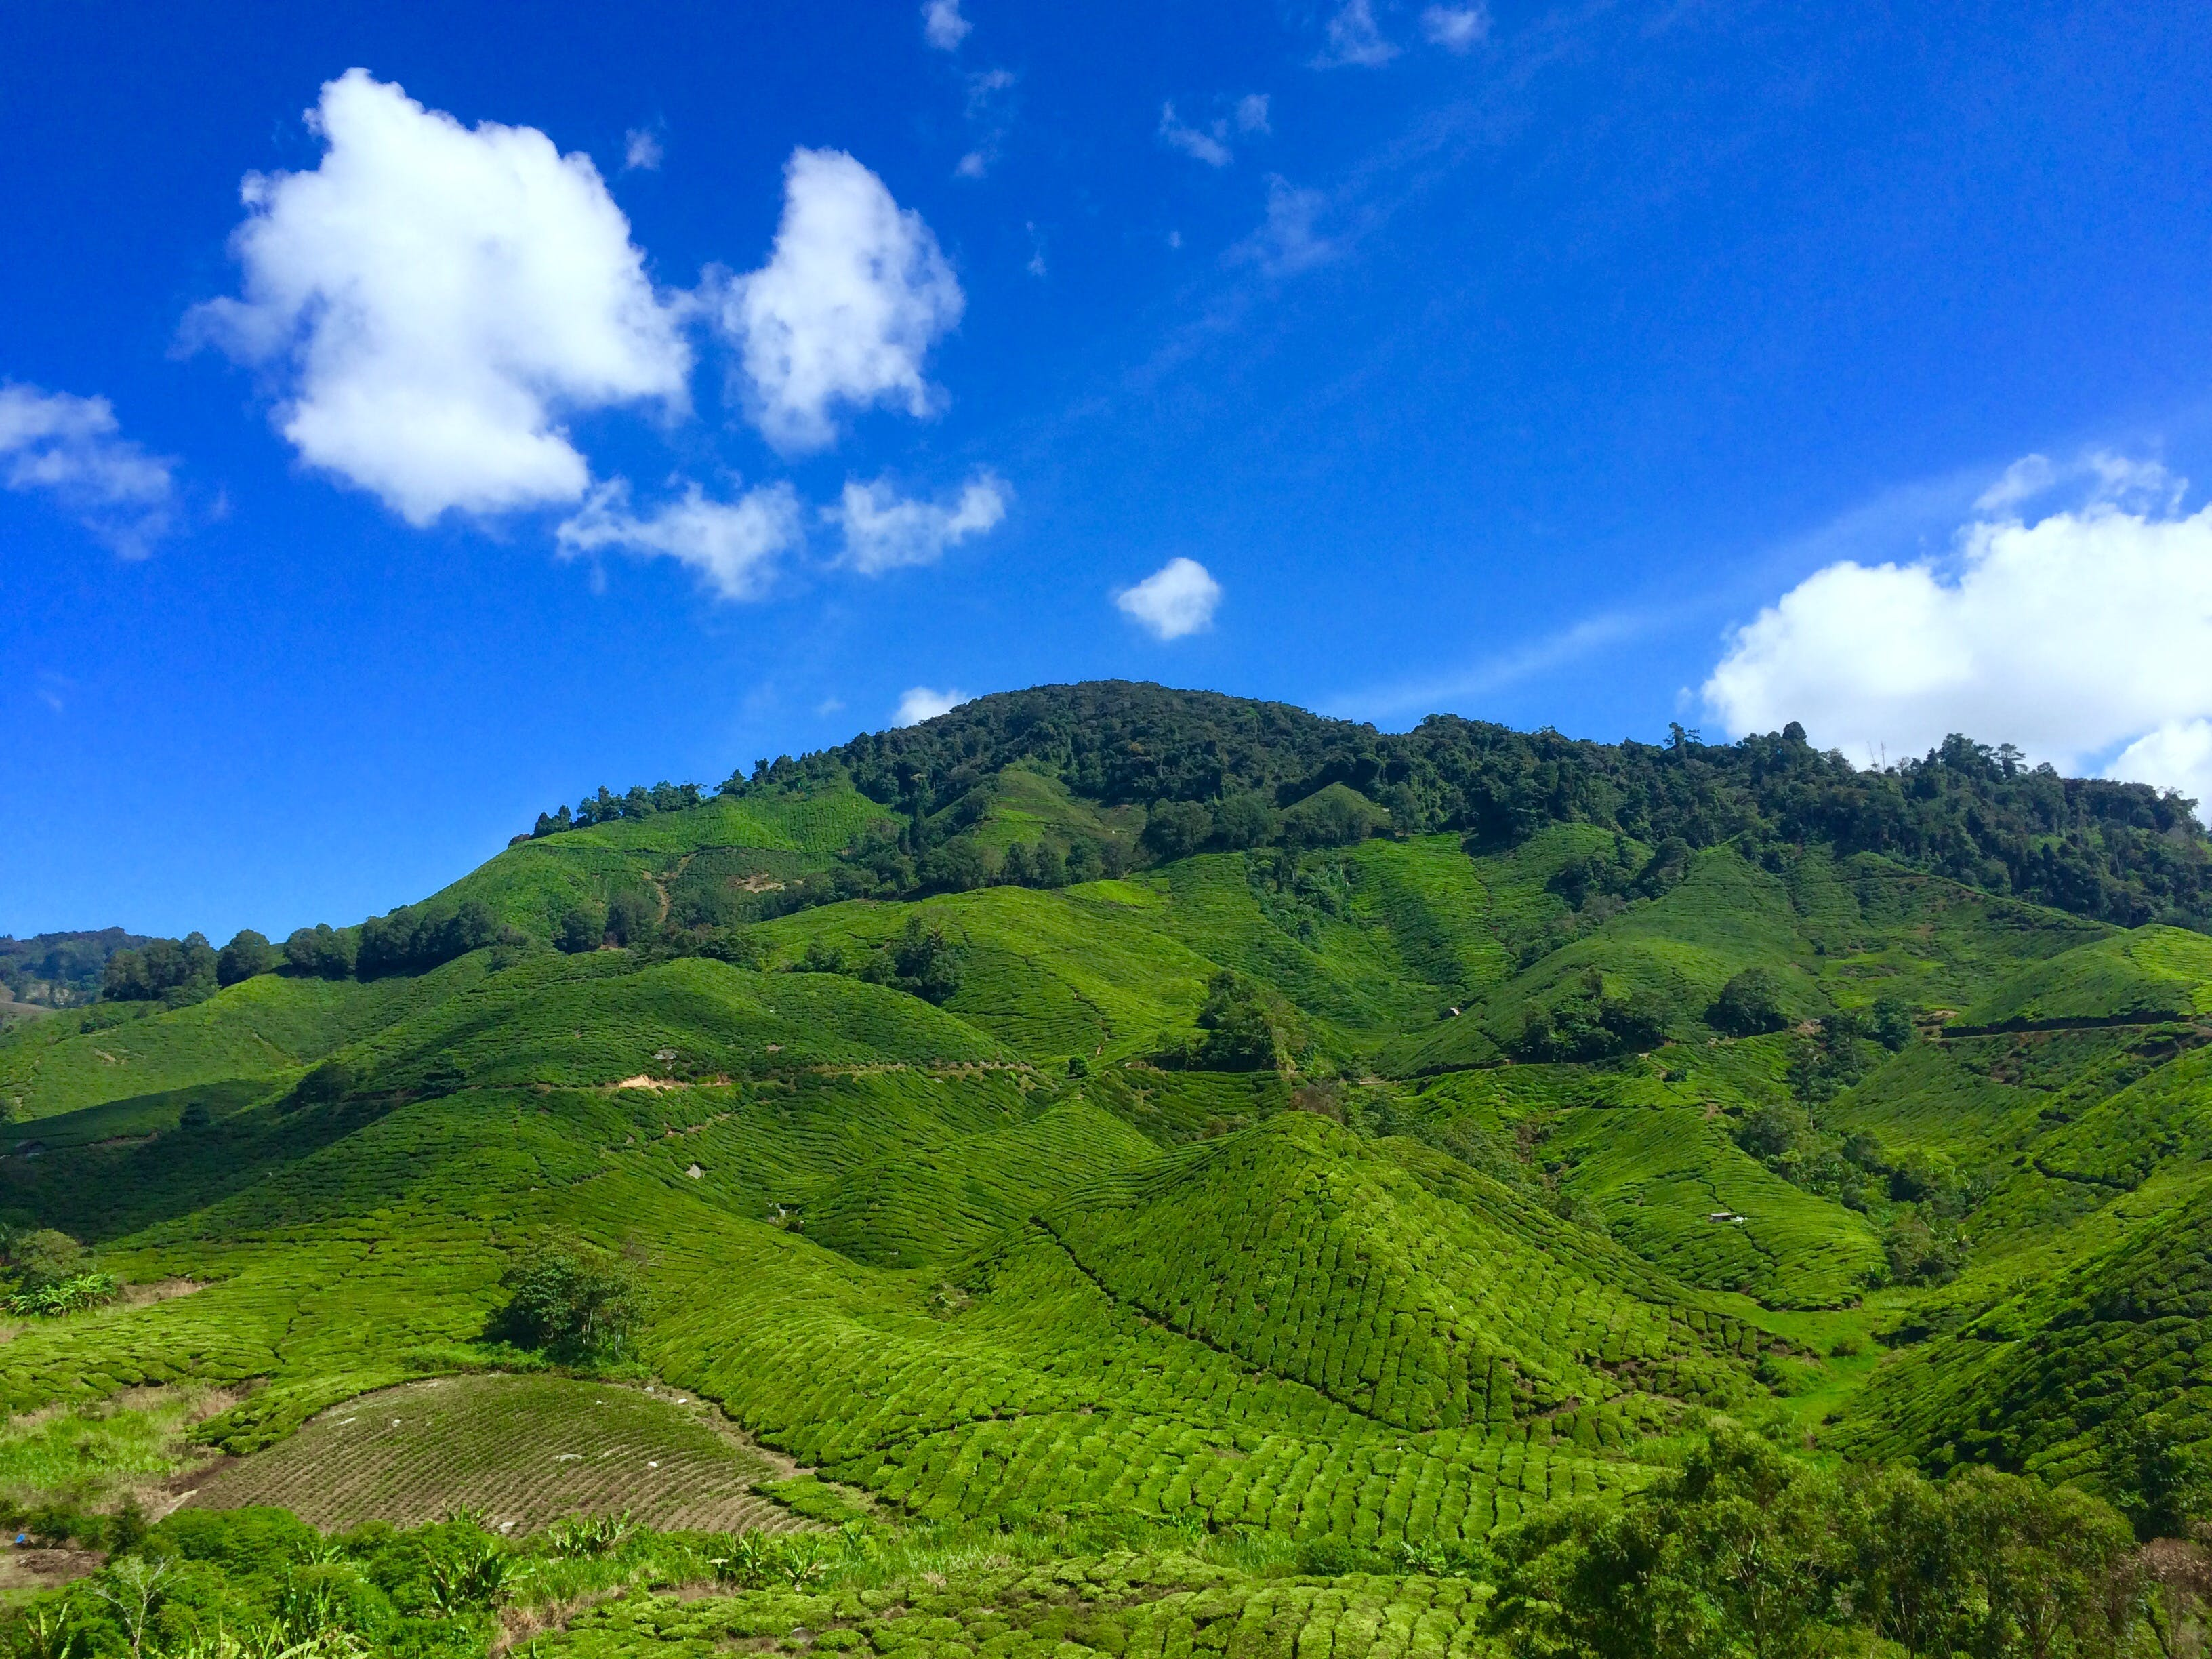 Landscape Photography of Green Hill Under Blue Sky and White Clouds during Daytime